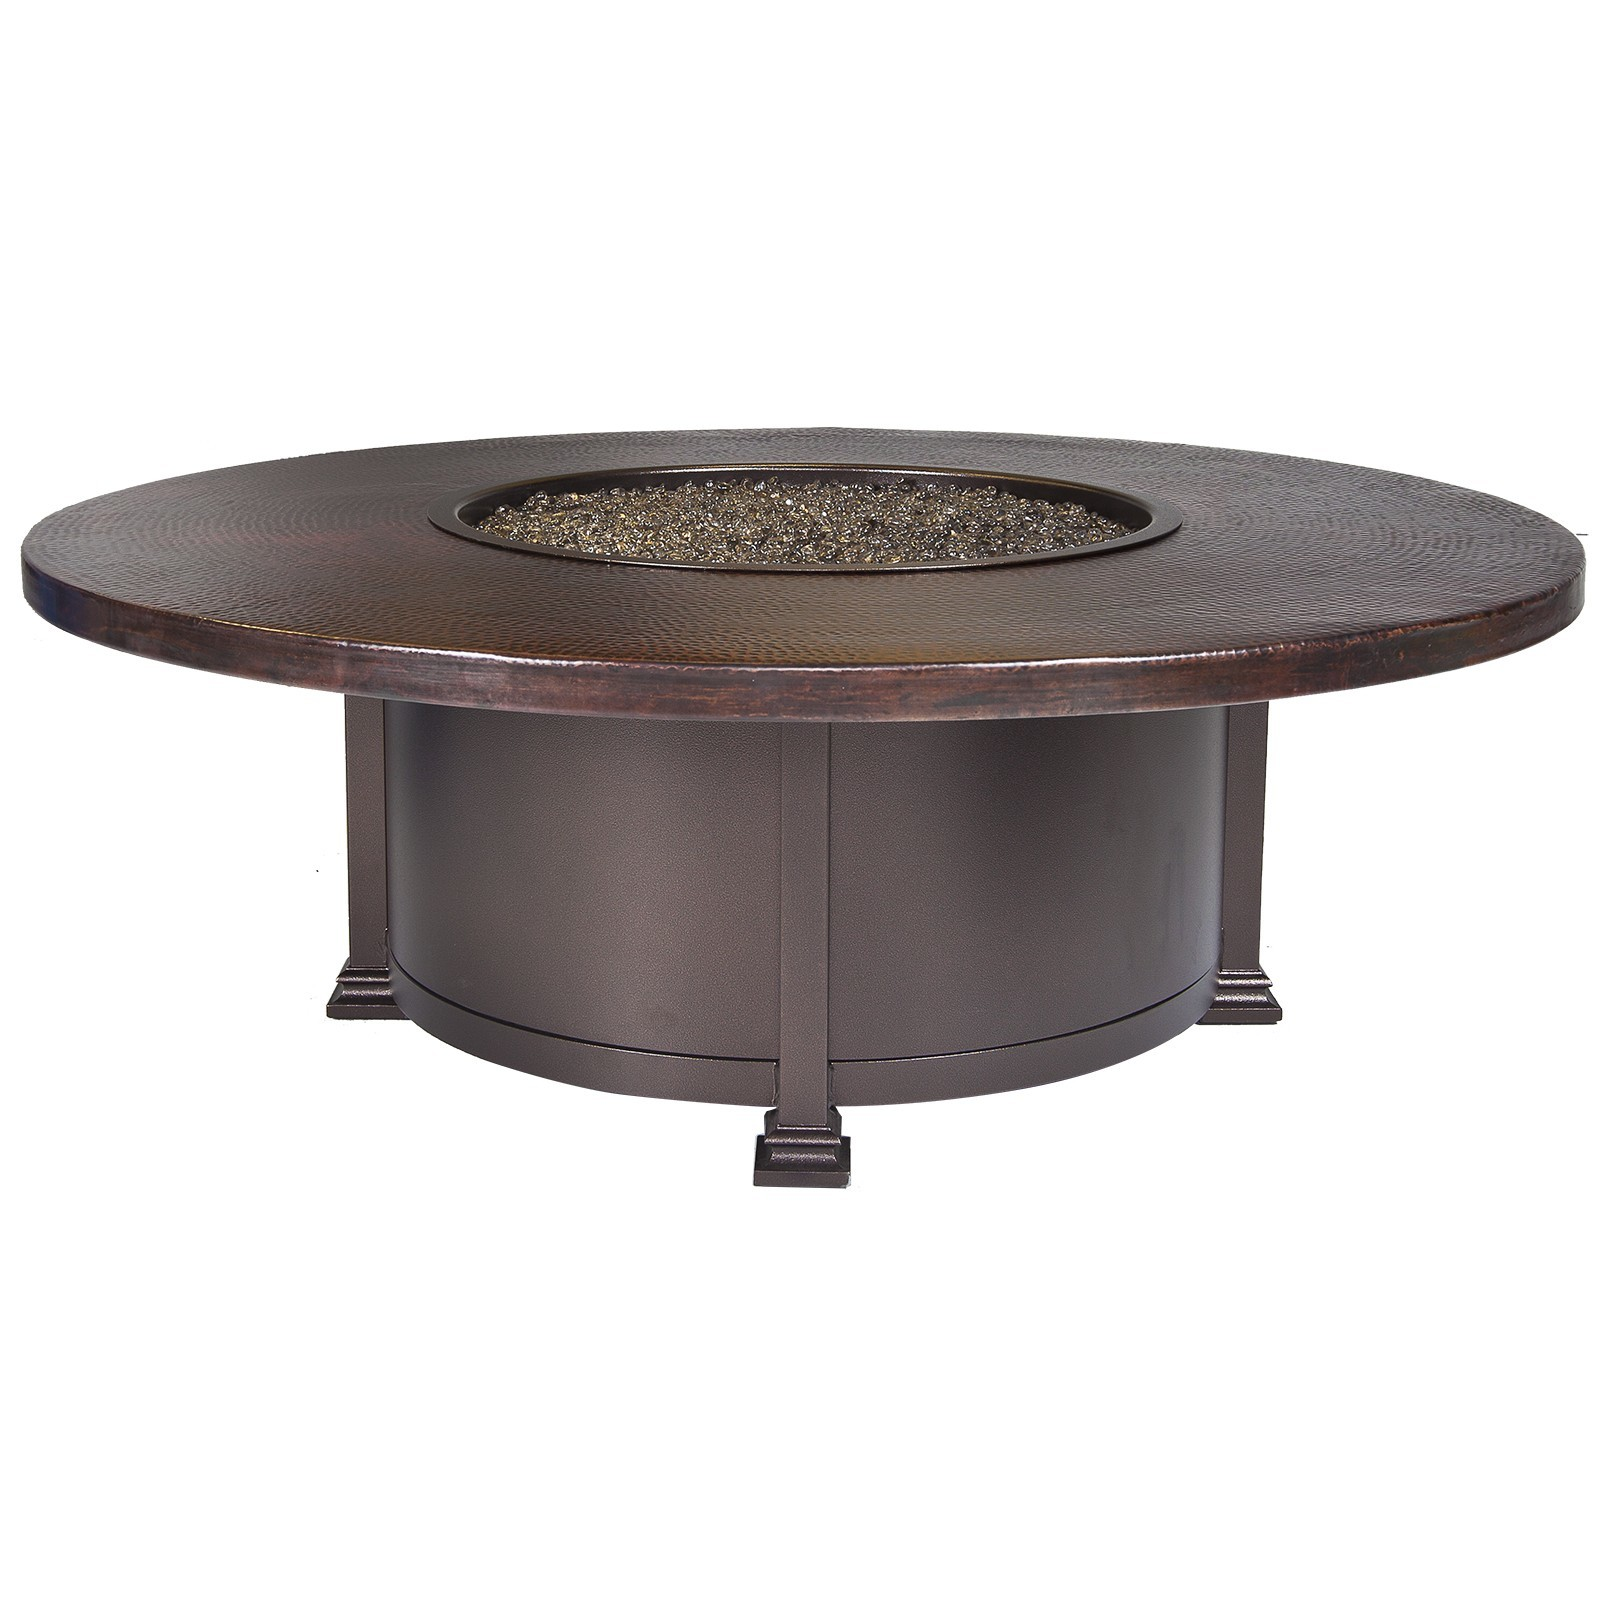 "Fire Pits 54"" Round Occasional Height Fire Pit"